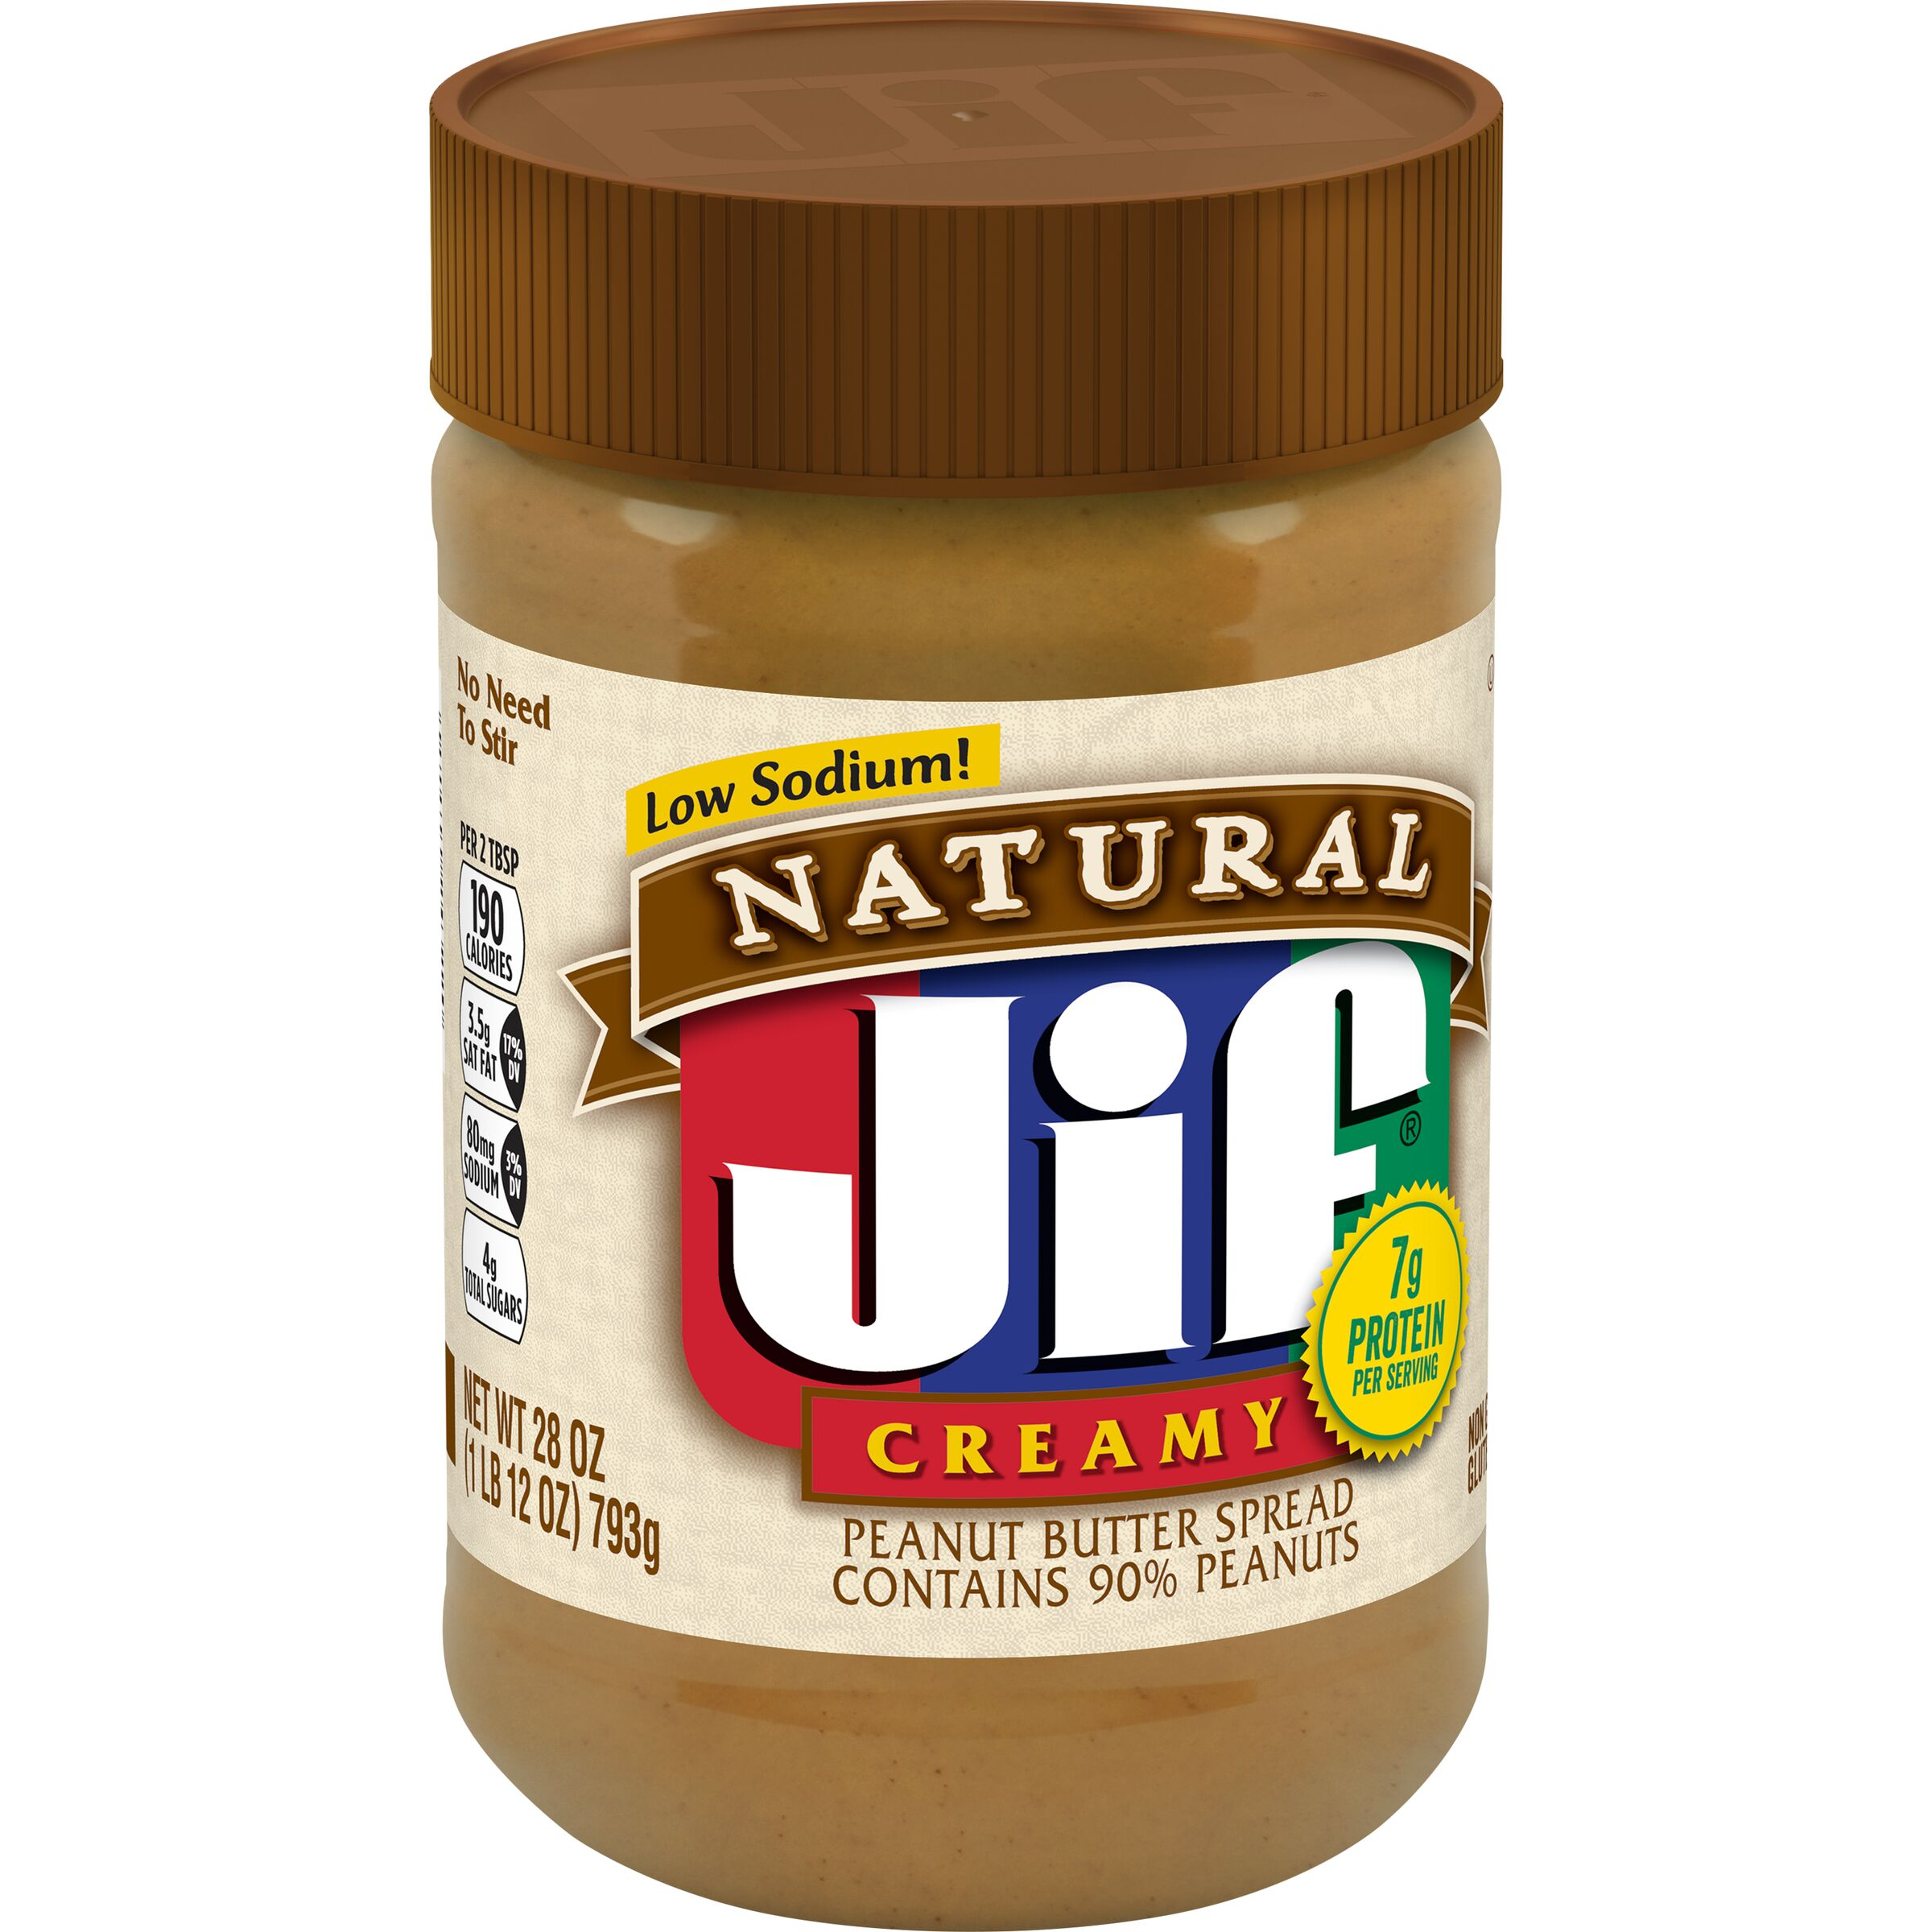 Jif Natural Natural Creamy Peanut Butter Spread Contains 90% Peanuts